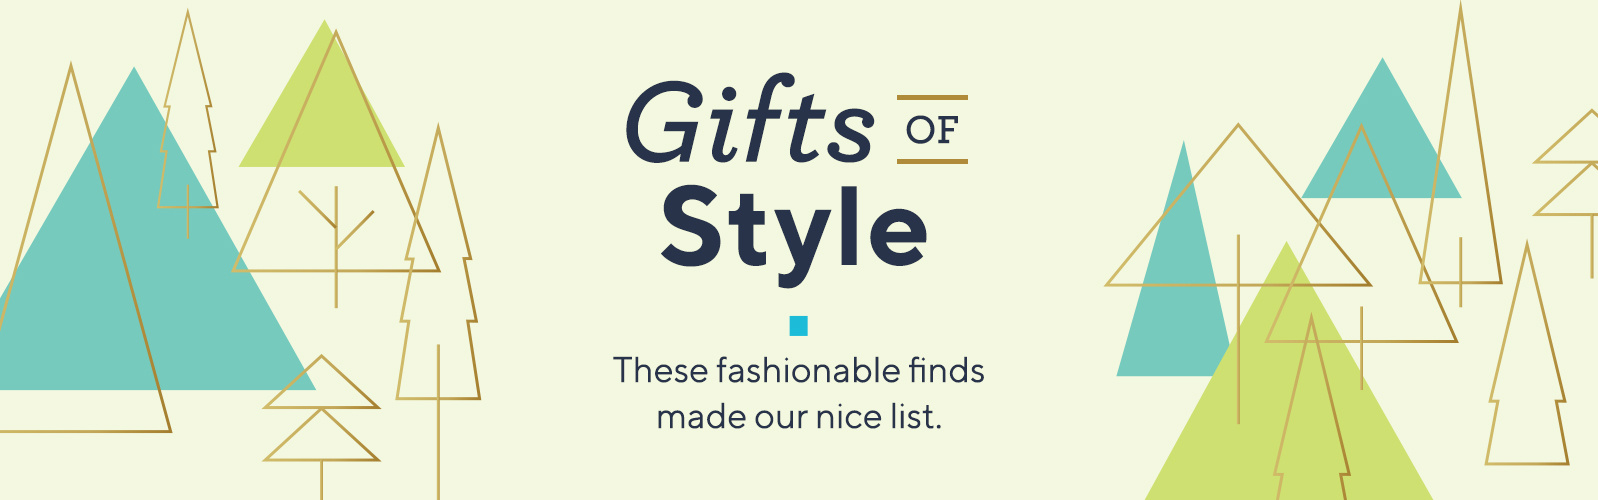 Gifts of Style.  These fashionable finds made our nice list.